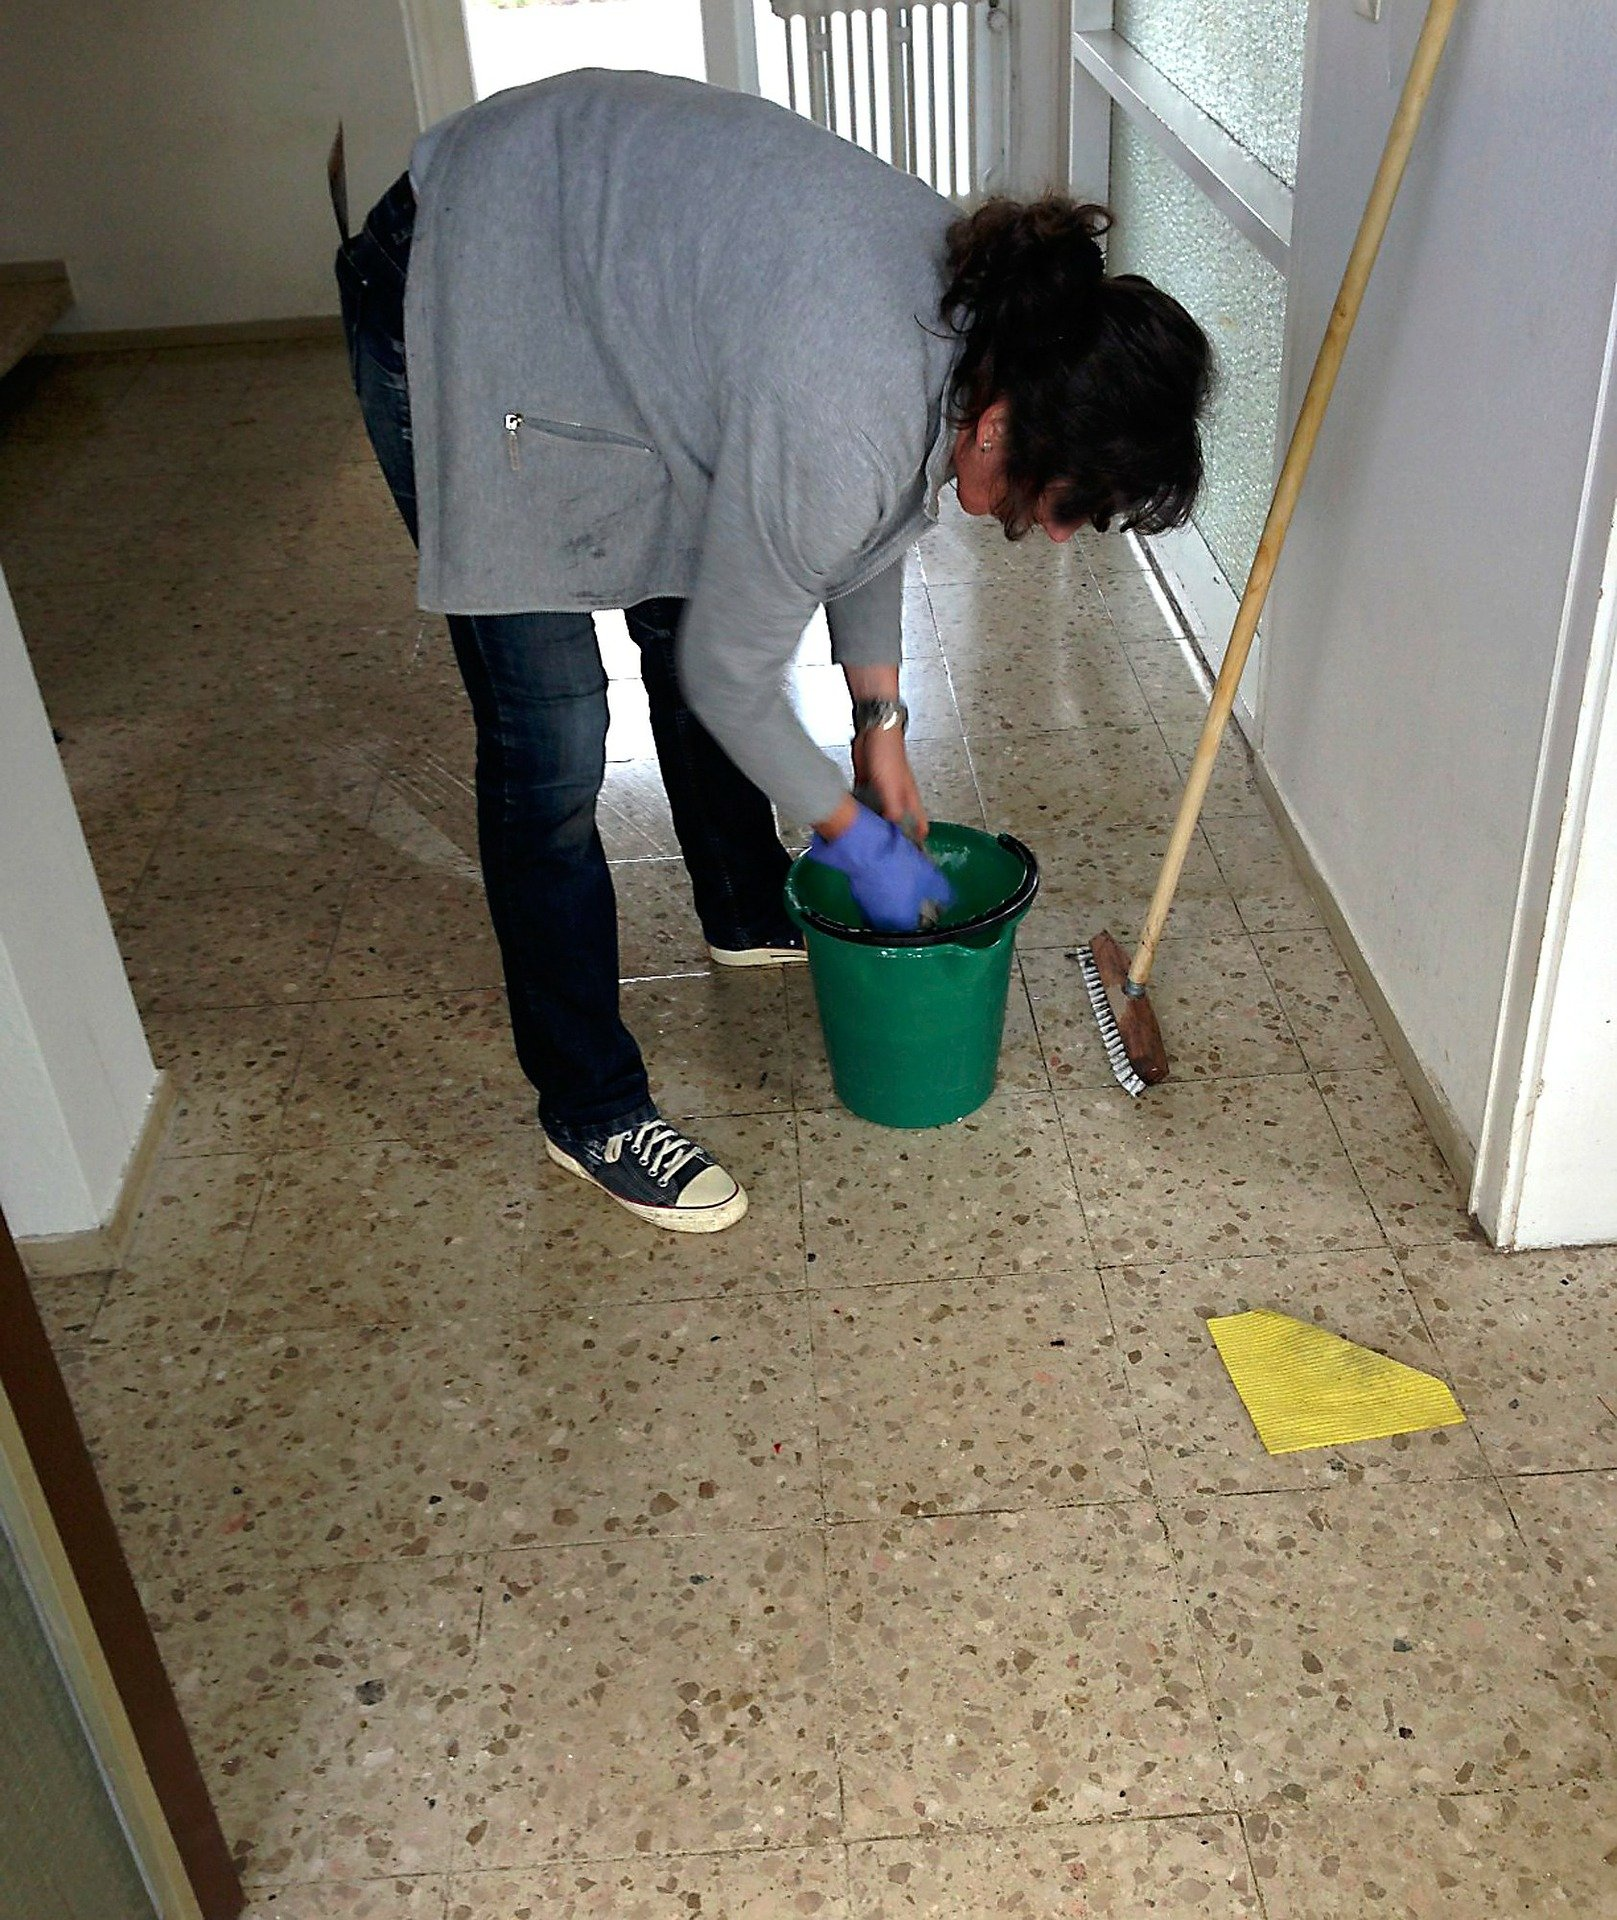 cleaning-lady-258520_1920